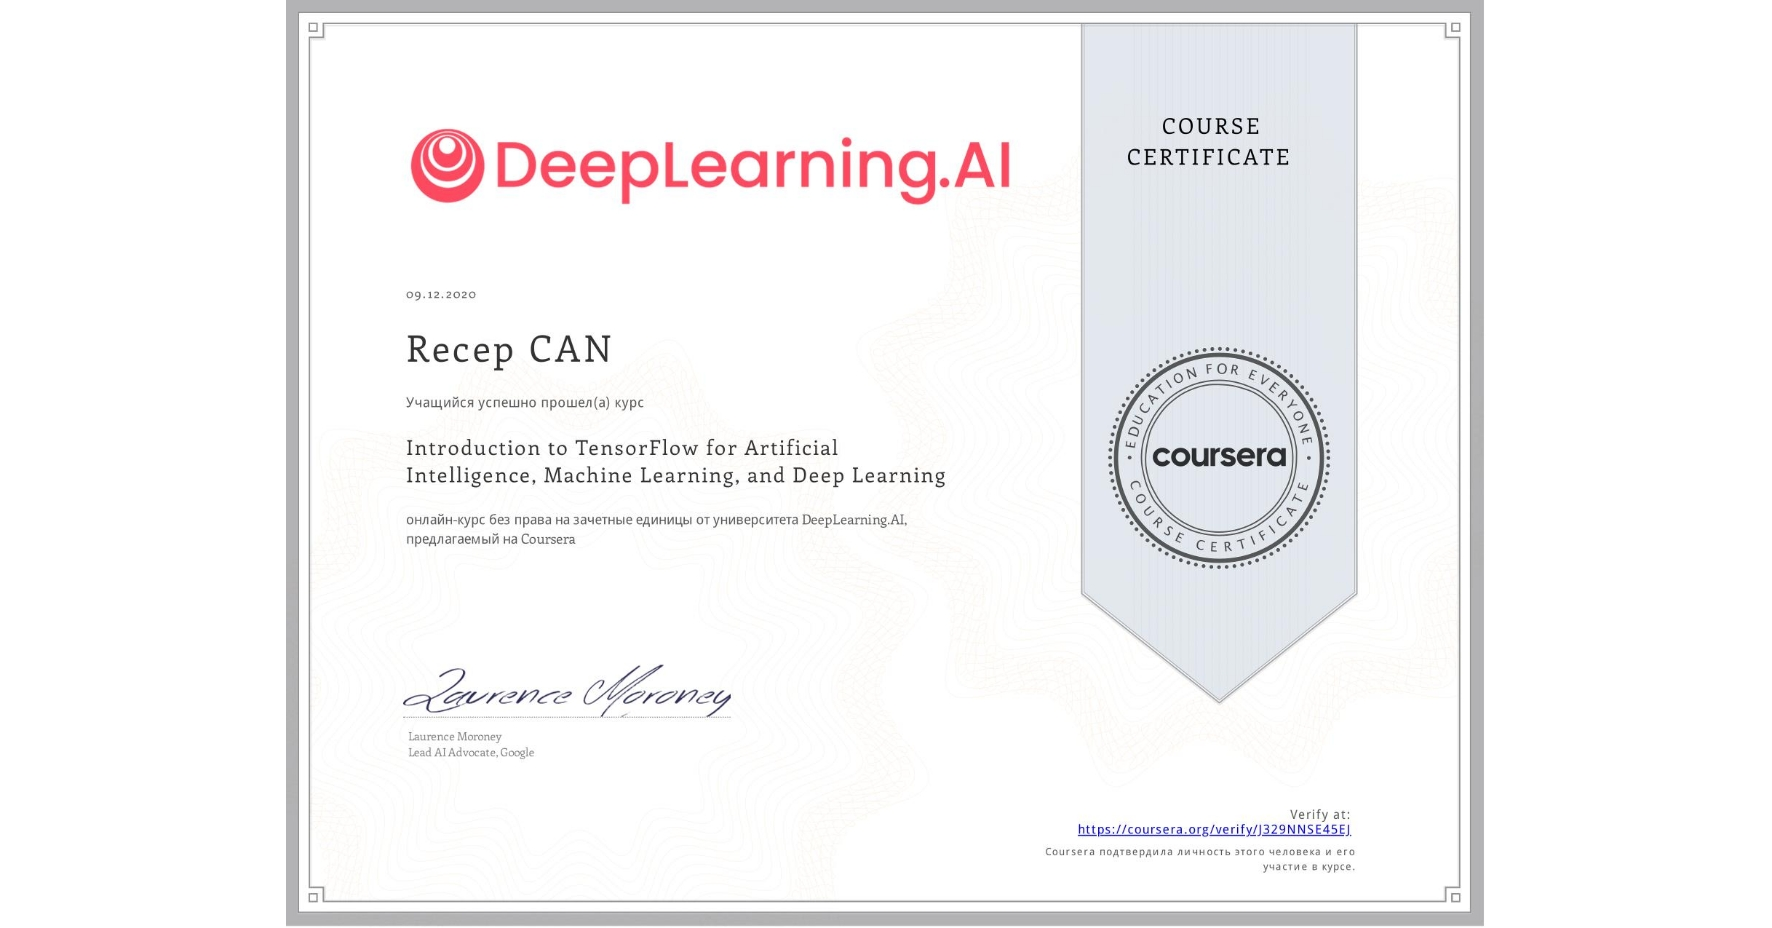 View certificate for Recep CAN, Introduction to TensorFlow for Artificial Intelligence, Machine Learning, and Deep Learning, an online non-credit course authorized by DeepLearning.AI and offered through Coursera